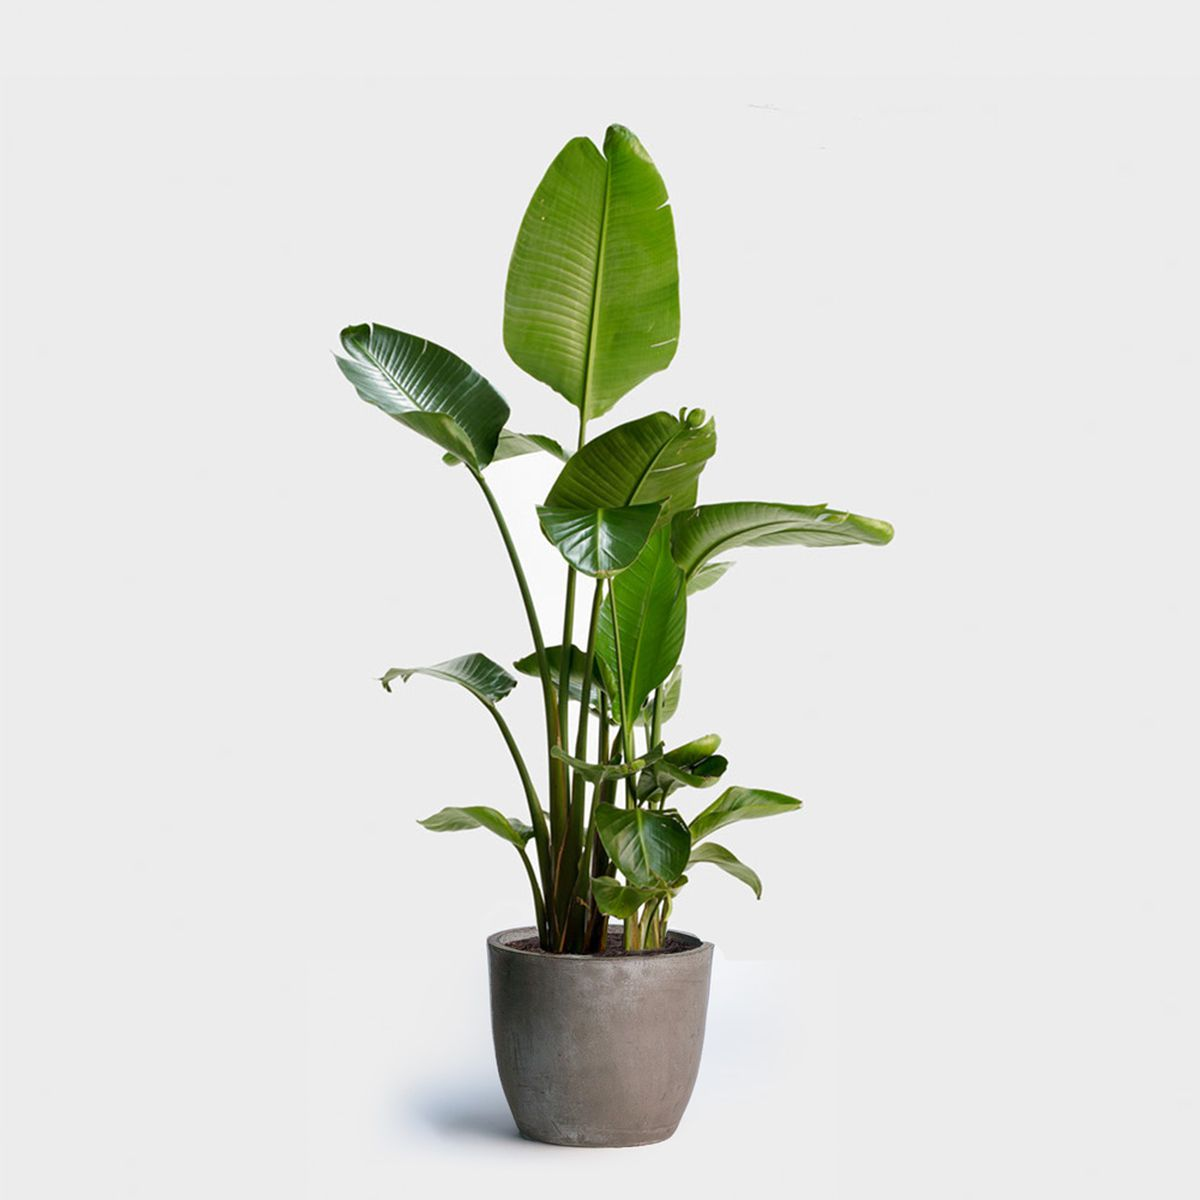 How to Buy Anthurium Plants